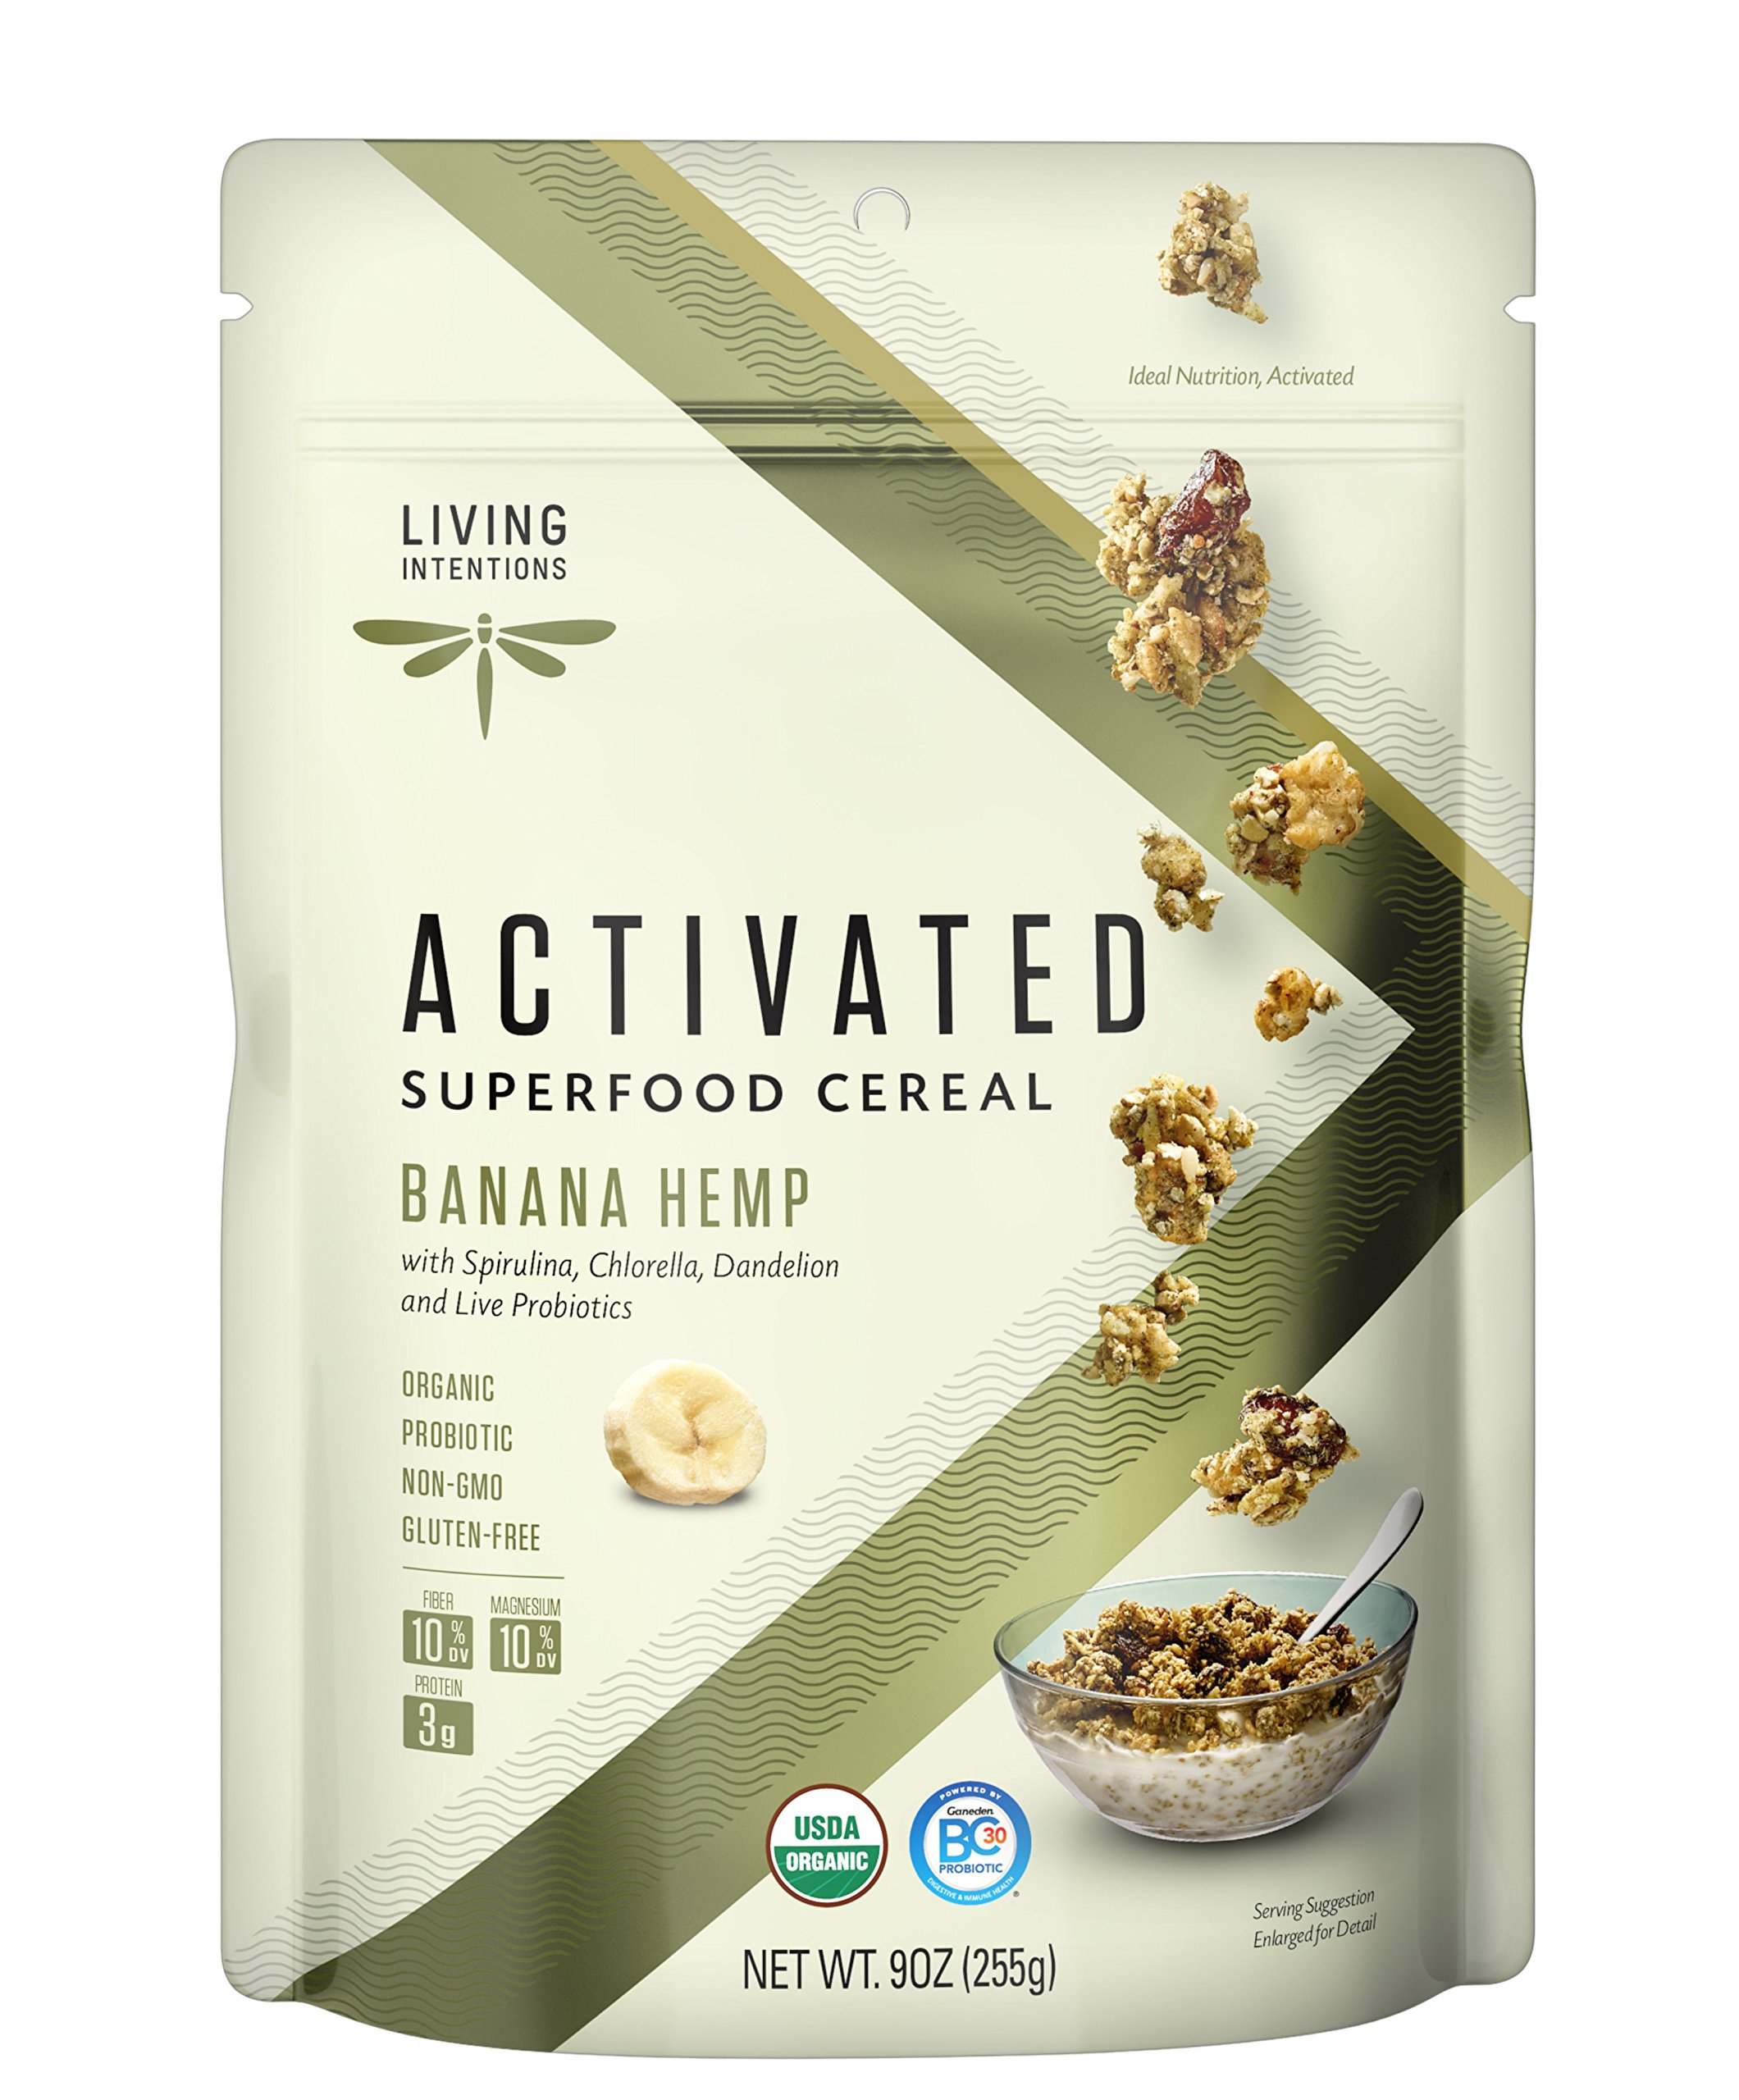 Living Intentions Activated Superfood Cereal, Gluten Free, Vegan, Organic, Banana Hemp, 9 Ounce